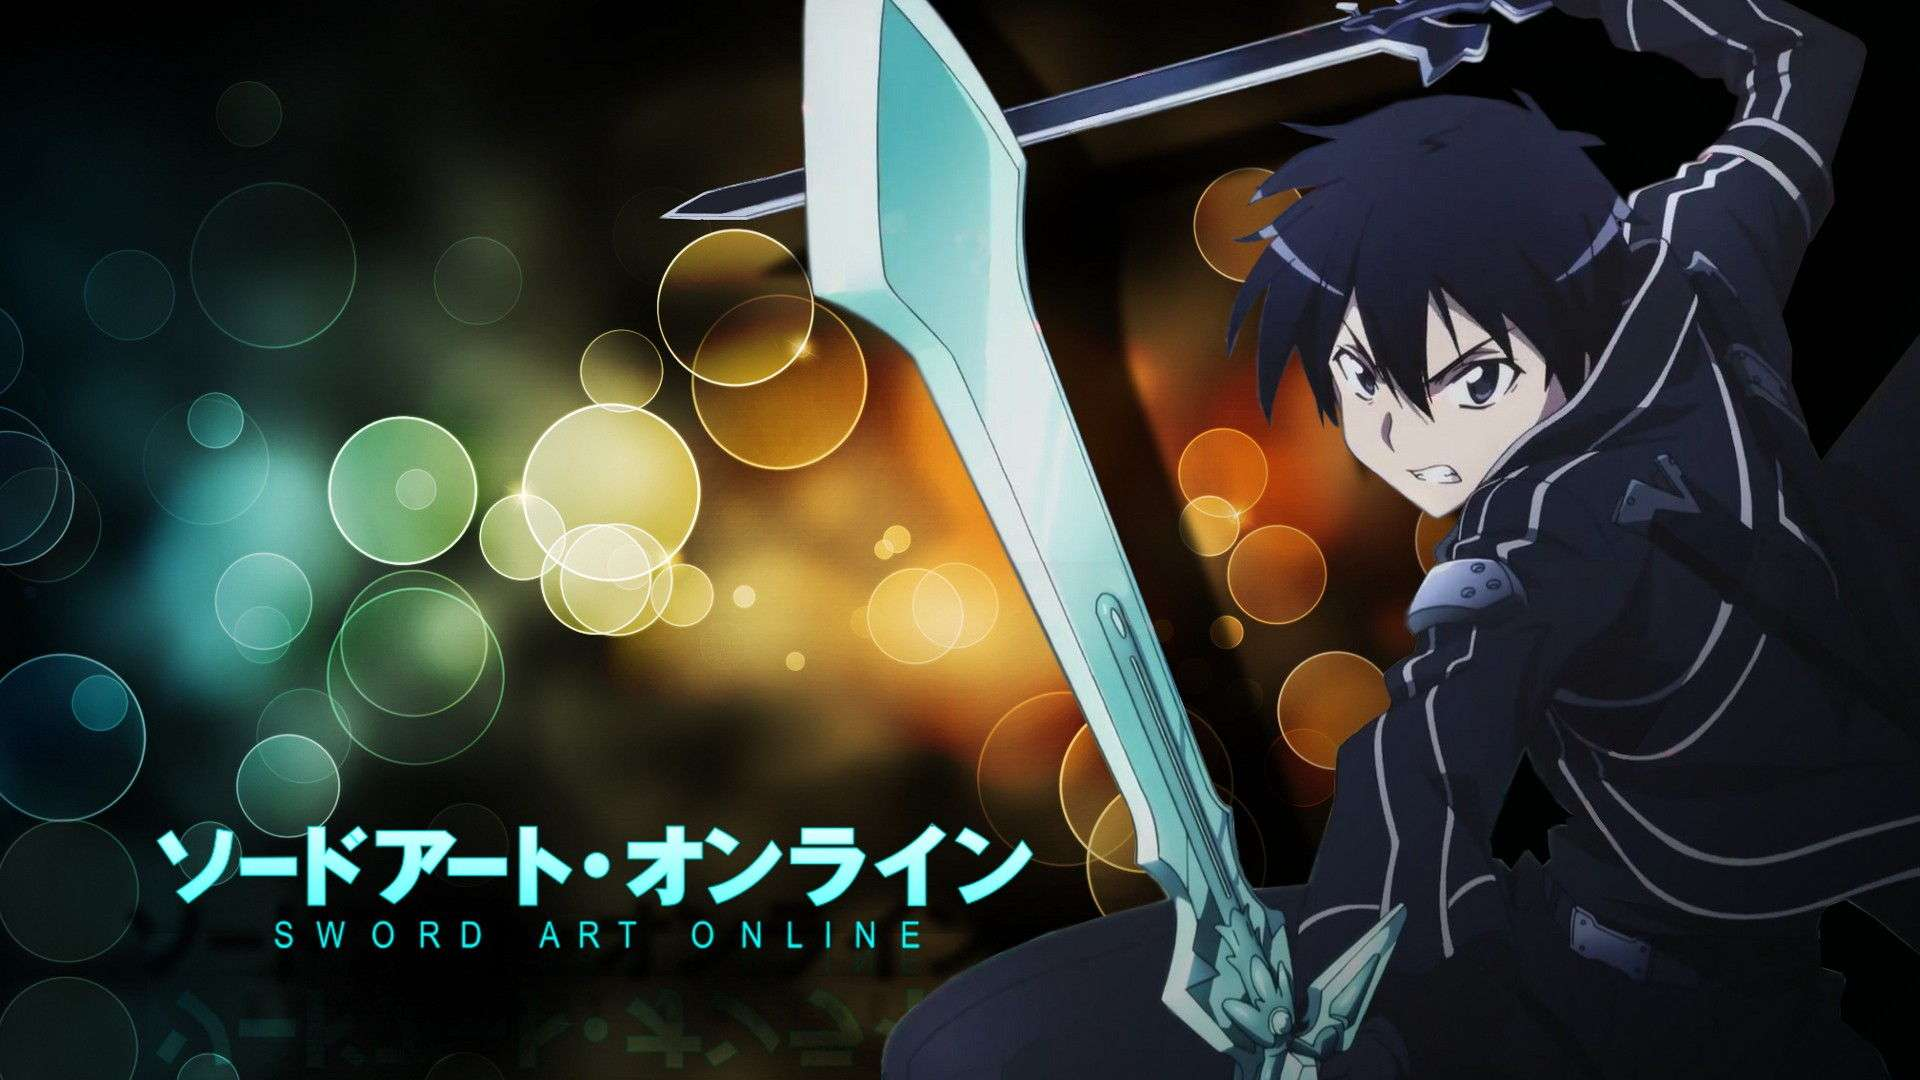 Sword Art Online Anime Wallpaper 025